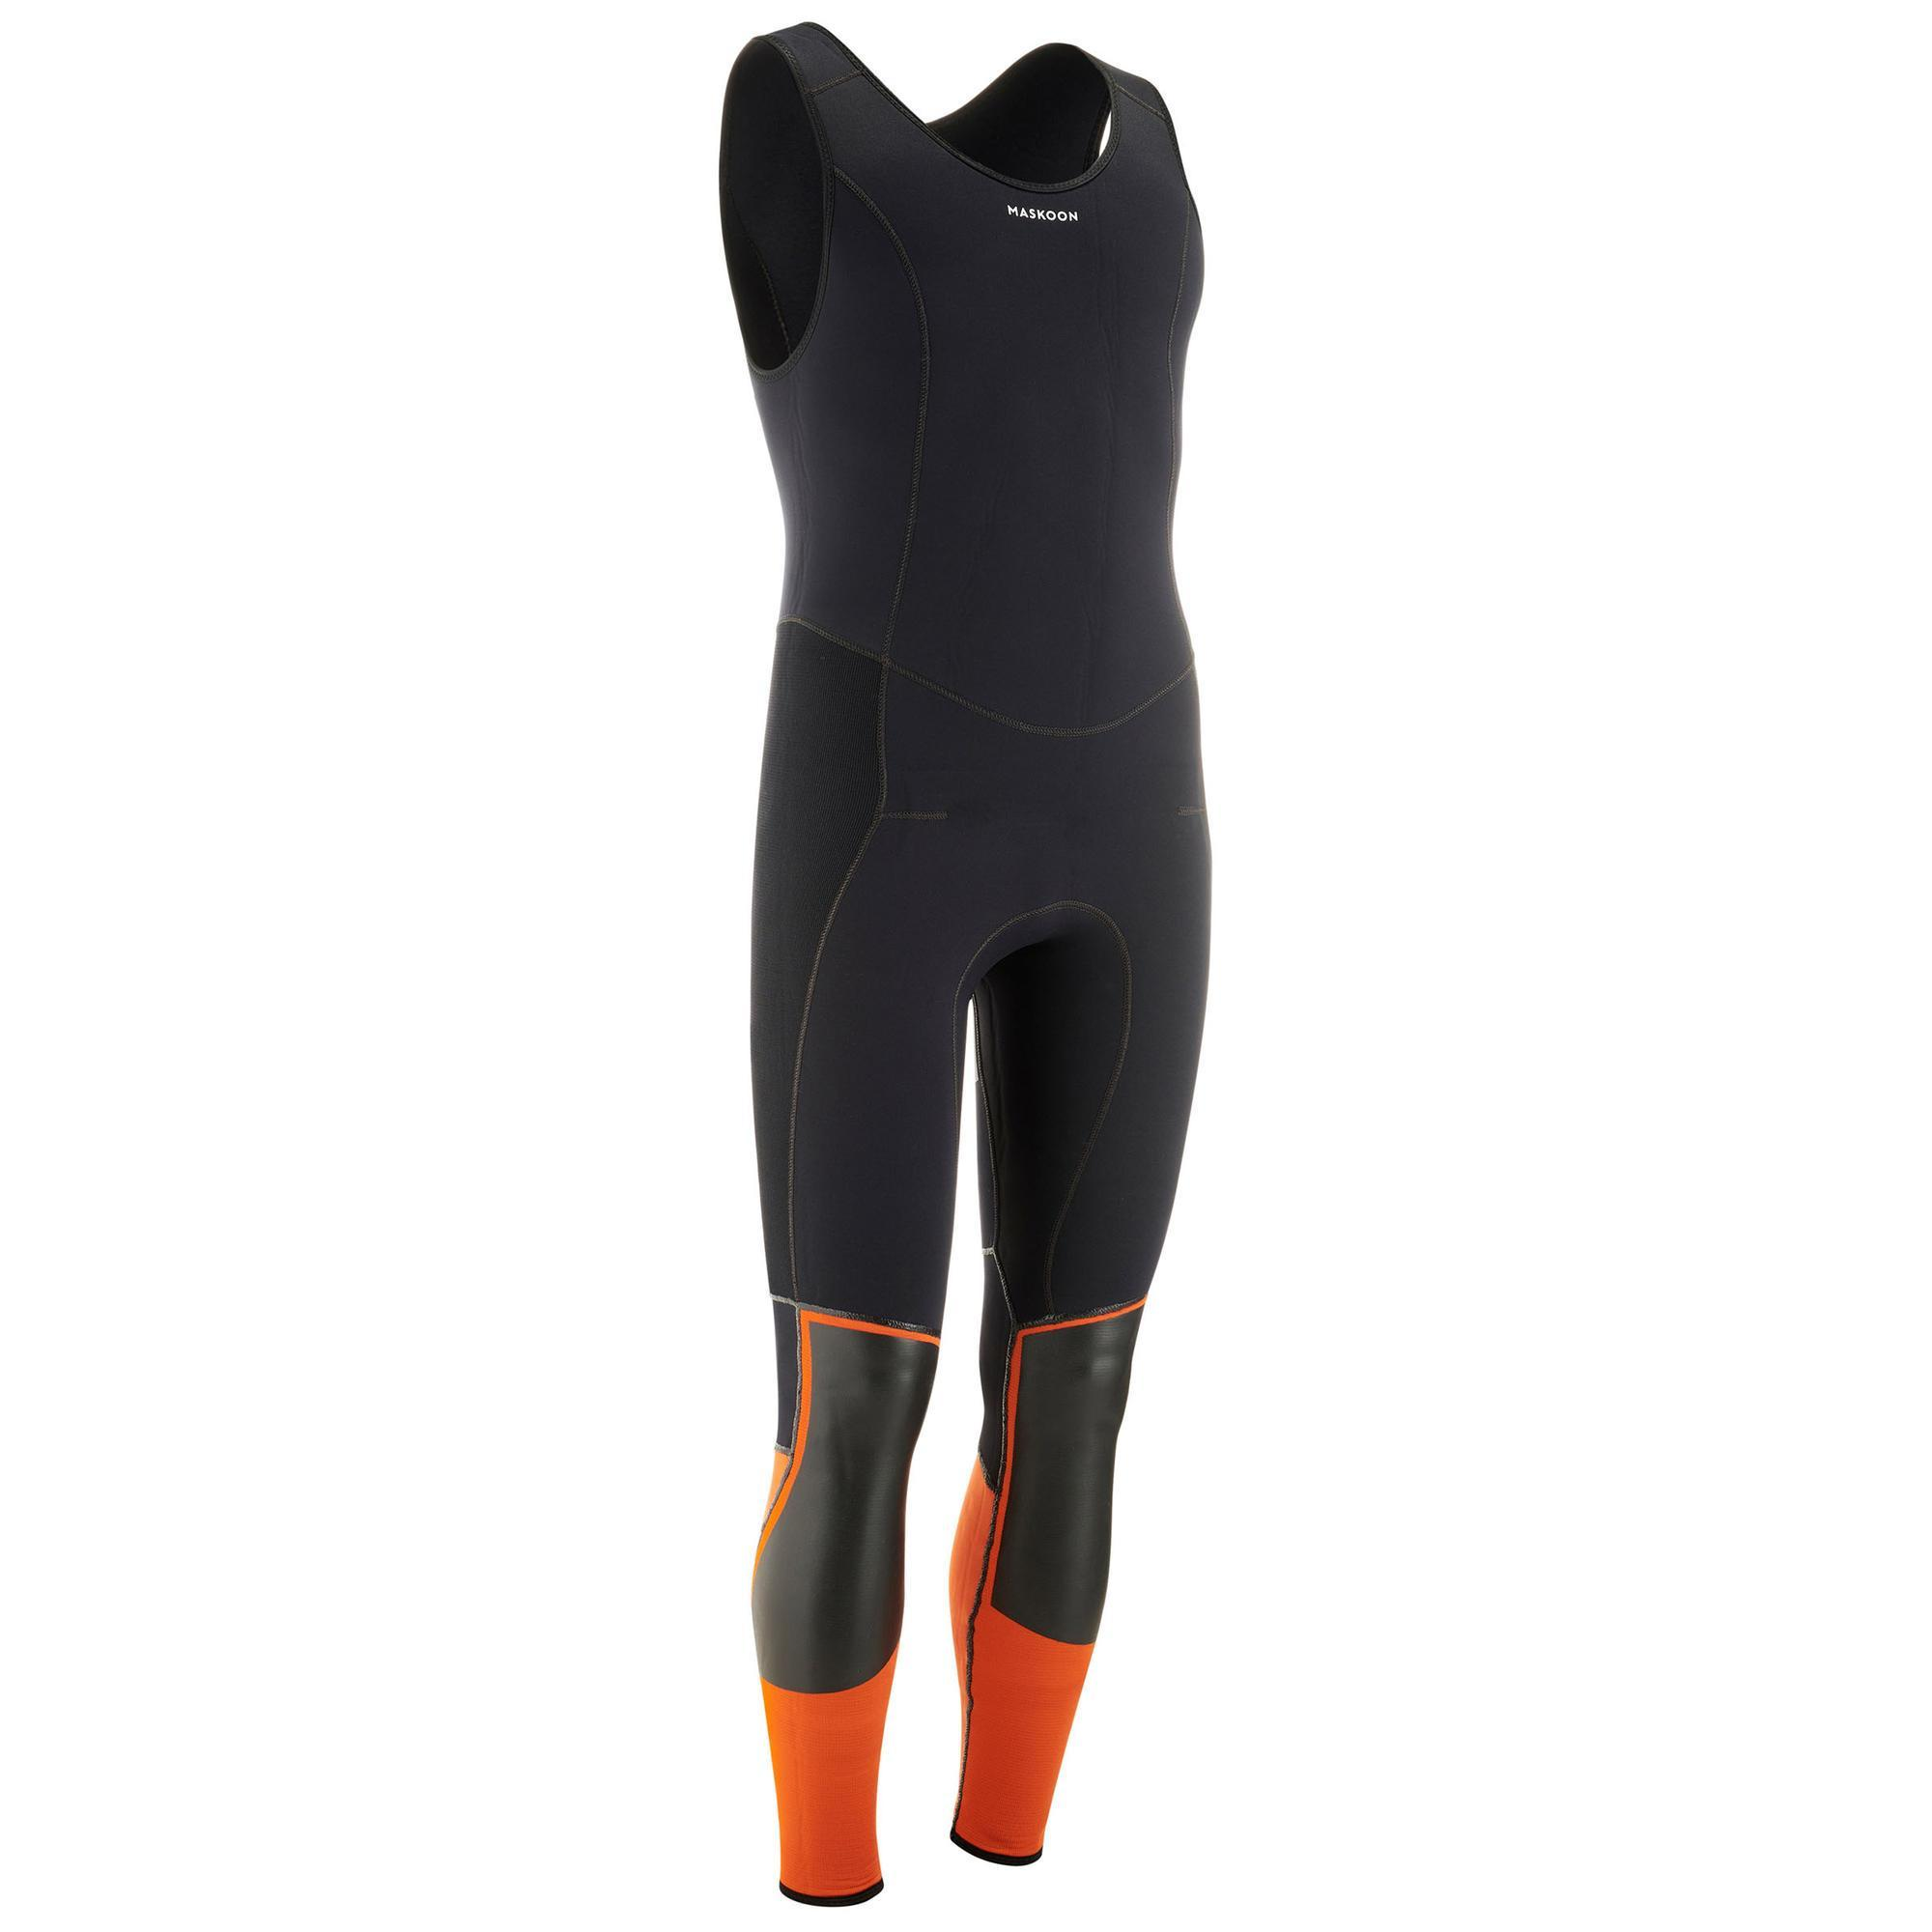 Long John Canyoning-Neoprenanzug 5 mm unisex | Sportbekleidung > Sportanzüge | Orange | Maskoon